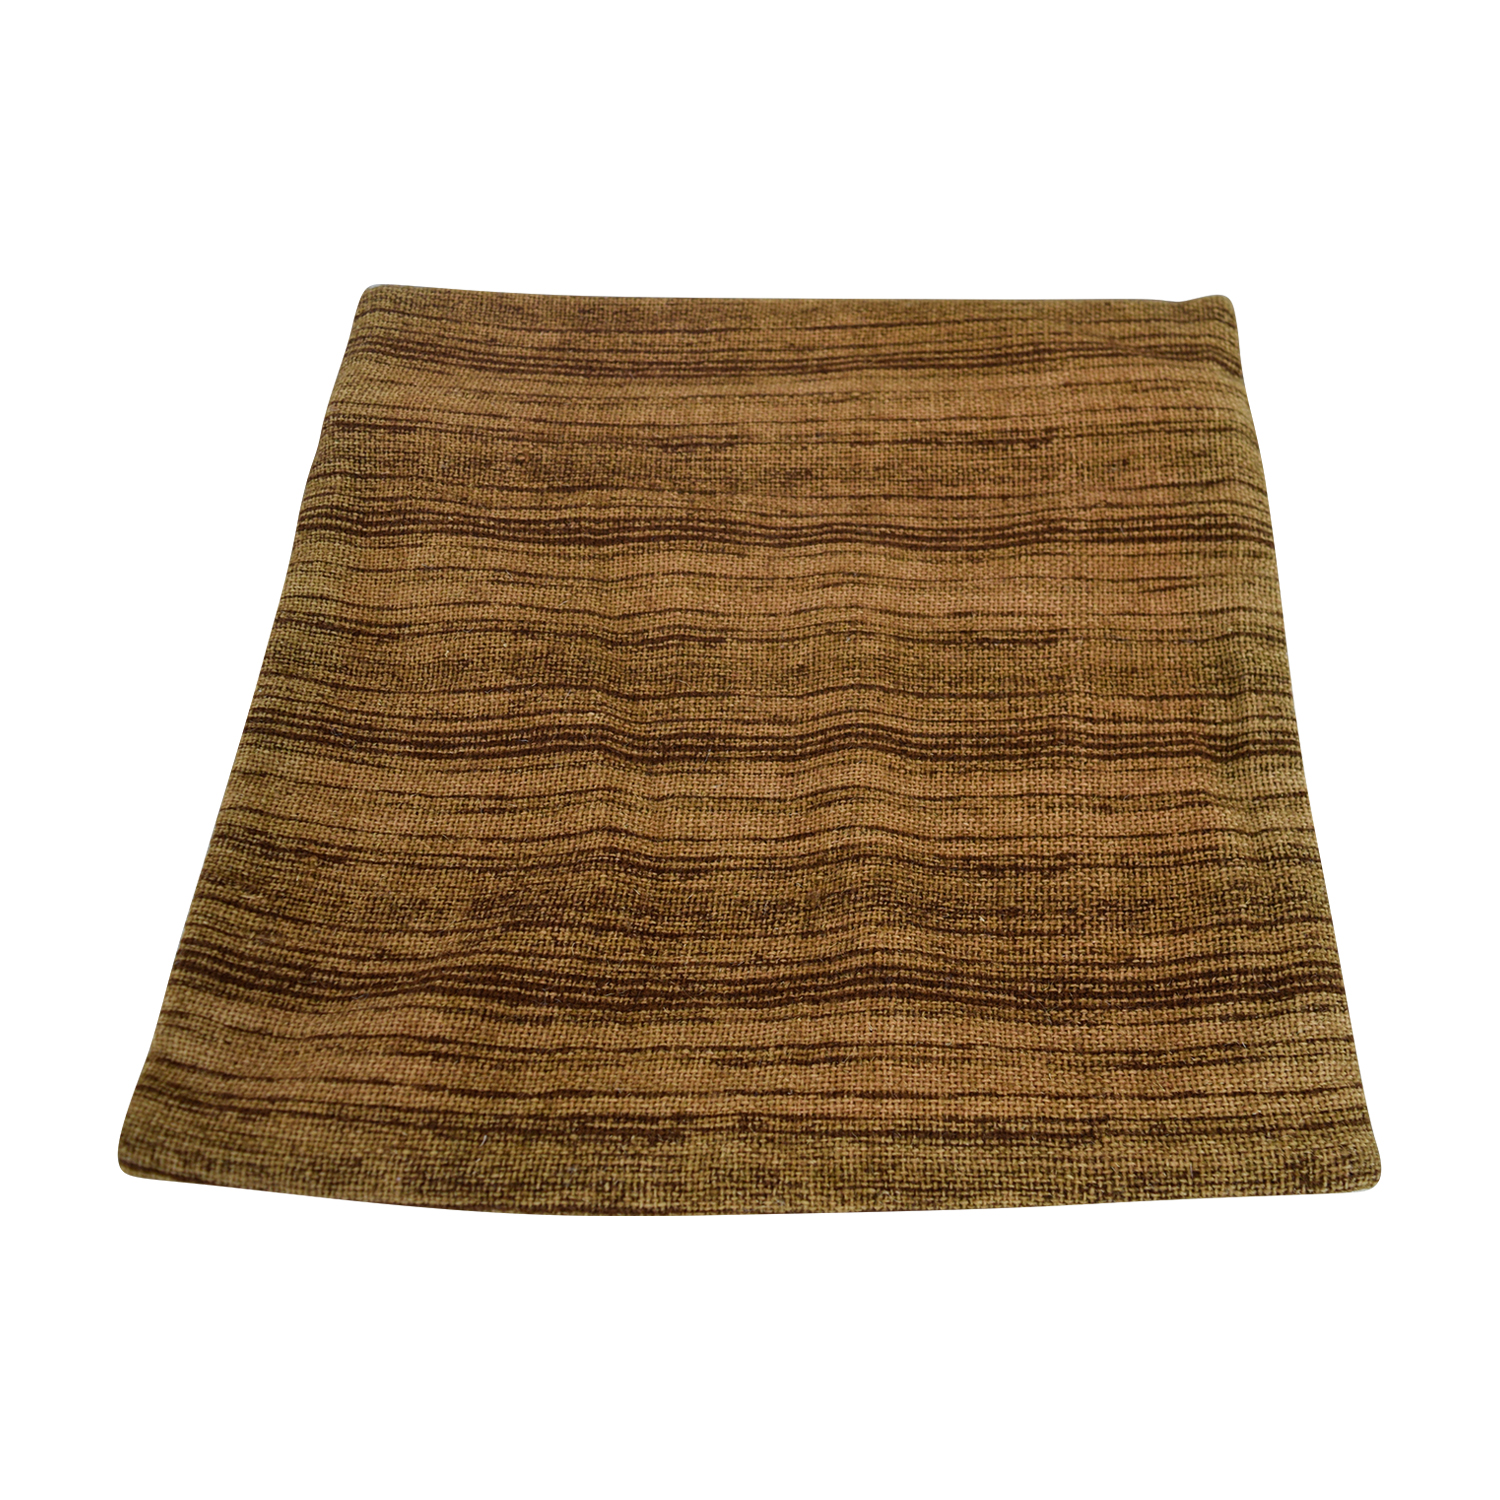 buy Obeetee Brown Cushion Cover Obeetee Decorative Accents